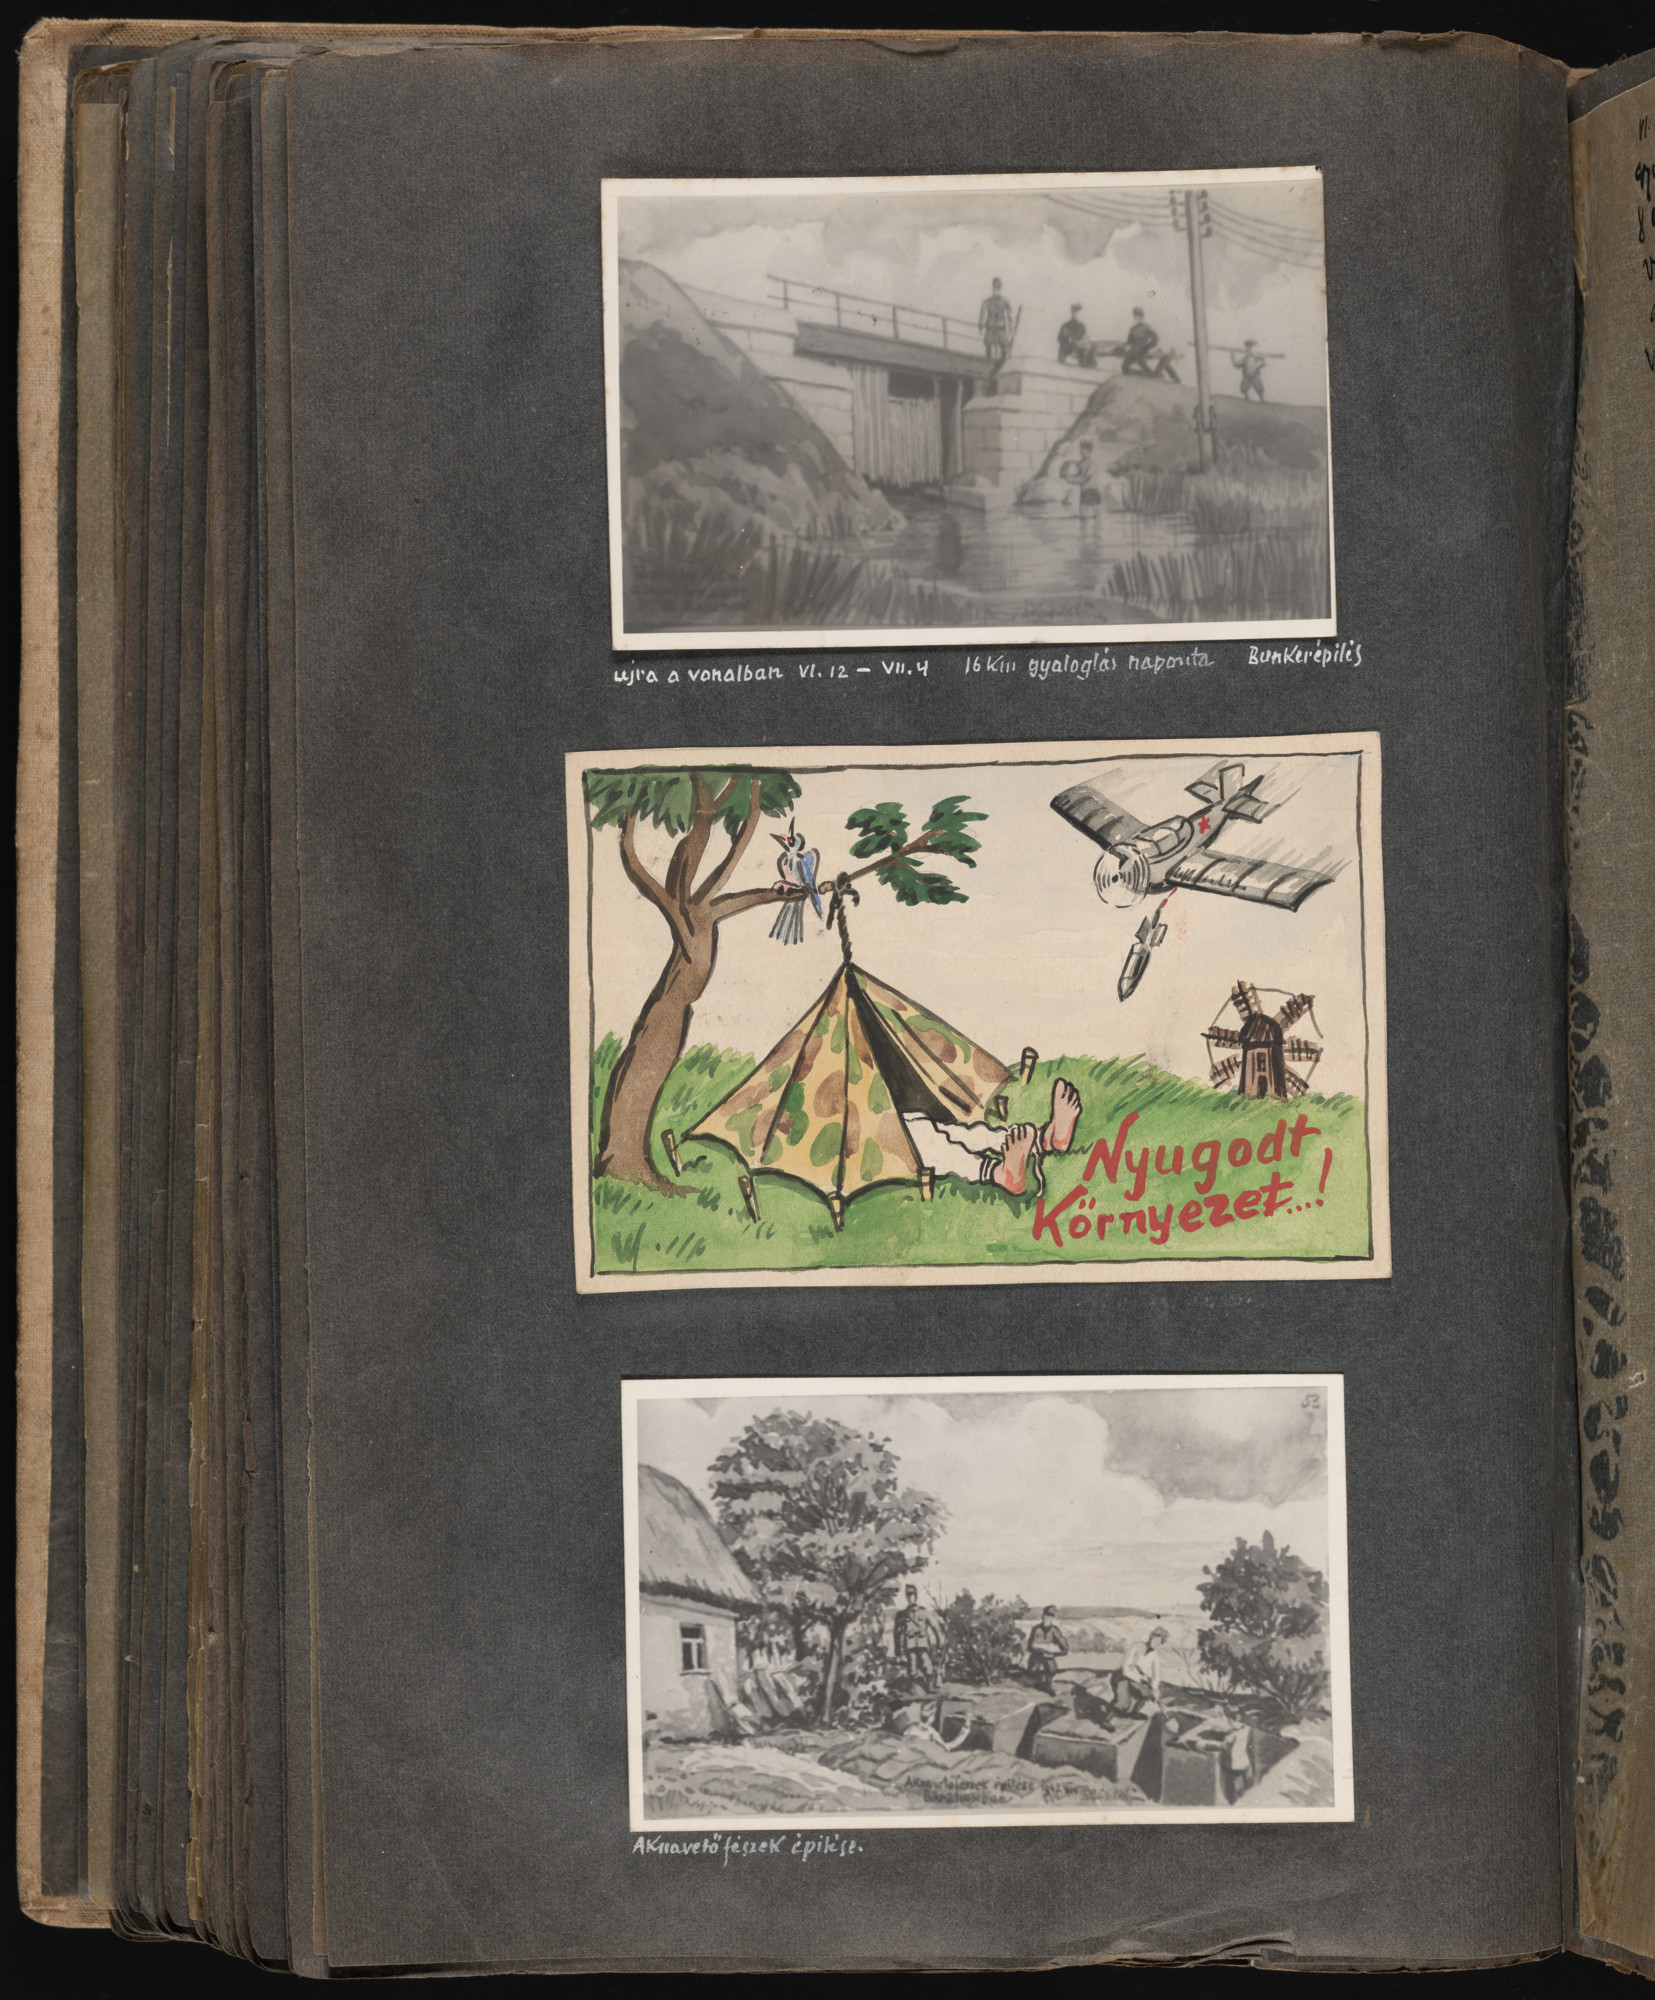 """Middle image: In a take-off of travel posters advertising peaceful vacation spots, Beifeld draws a picture of a Hungarian military tent pitched next to a tree on which a bird is cheerfully chirping.  Next to the tent the artist writes """"Peaceful Surroundings"""" but above, a Soviet bomber releases a bomb aimed at the tent.  One page of an illustrated album produced by Gyorgy Beifeld (1902-1982), a Hungarian Jew from Budapest, who was drafted into the Munkaszolgalat (Hungarian Labor Service system) and spent more than a year on the Soviet front, from April 1942 through May 1943.  The album contains 402 drawings and watercolors by Byfield, as well as a narrative of his experiences."""